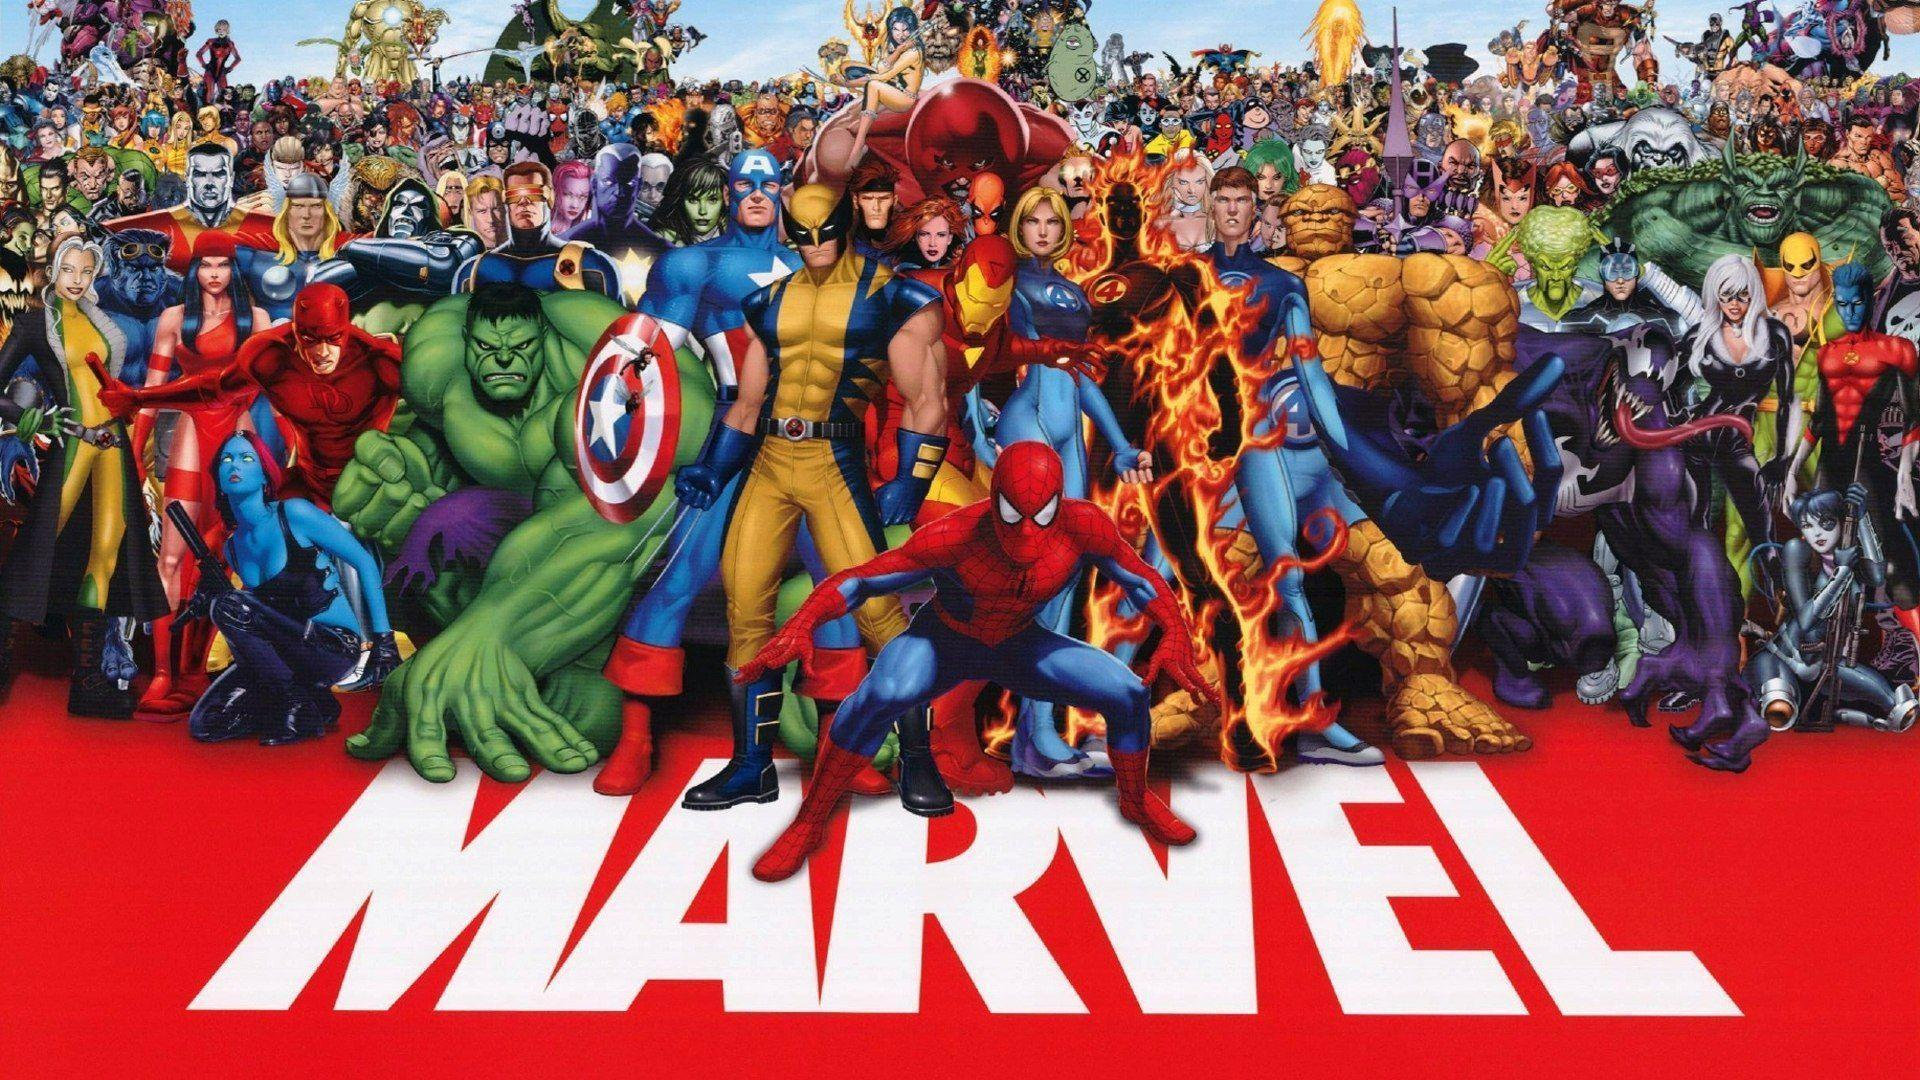 Marvel Superhero Wallpaper 22184 Wallpapers HD